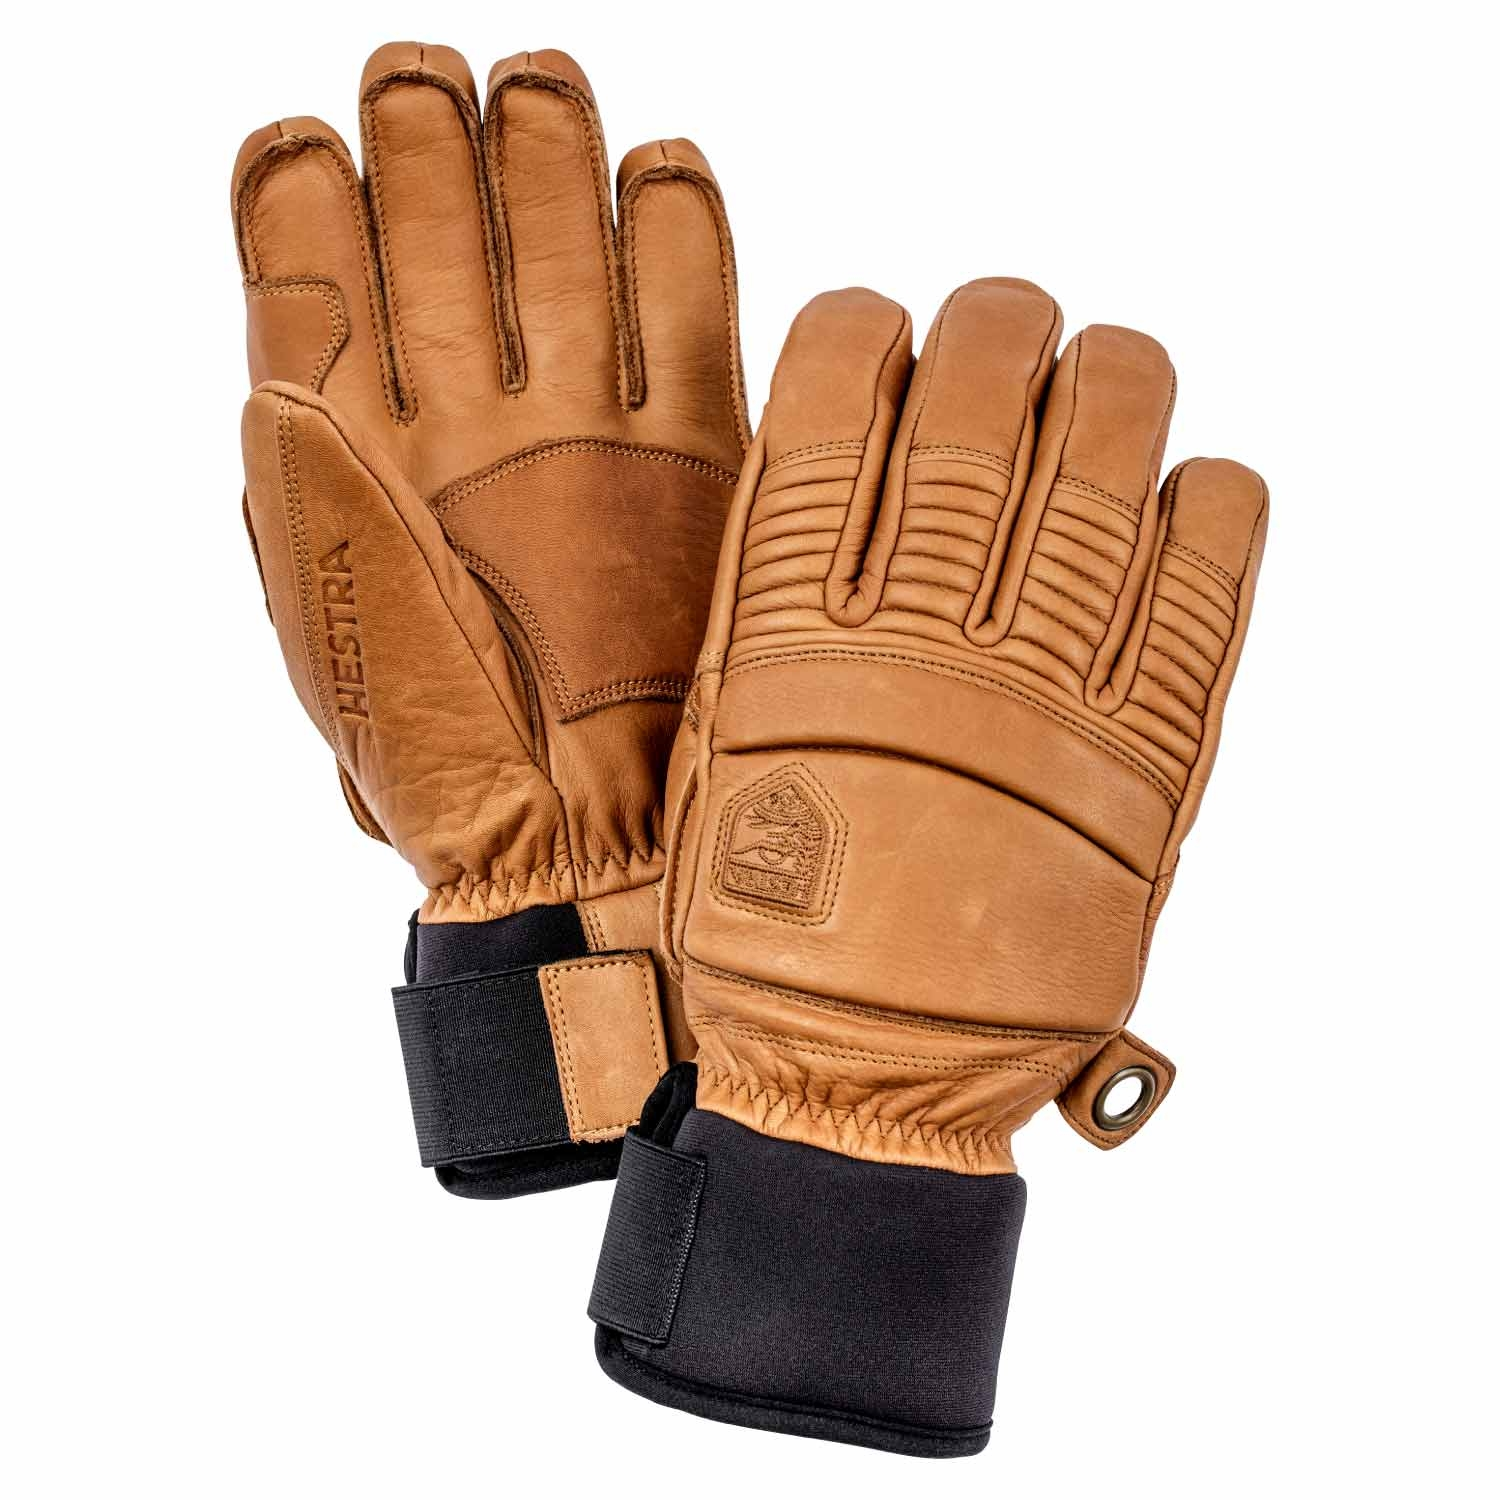 Hestra Leather Fall Line Gloves Tan 2021